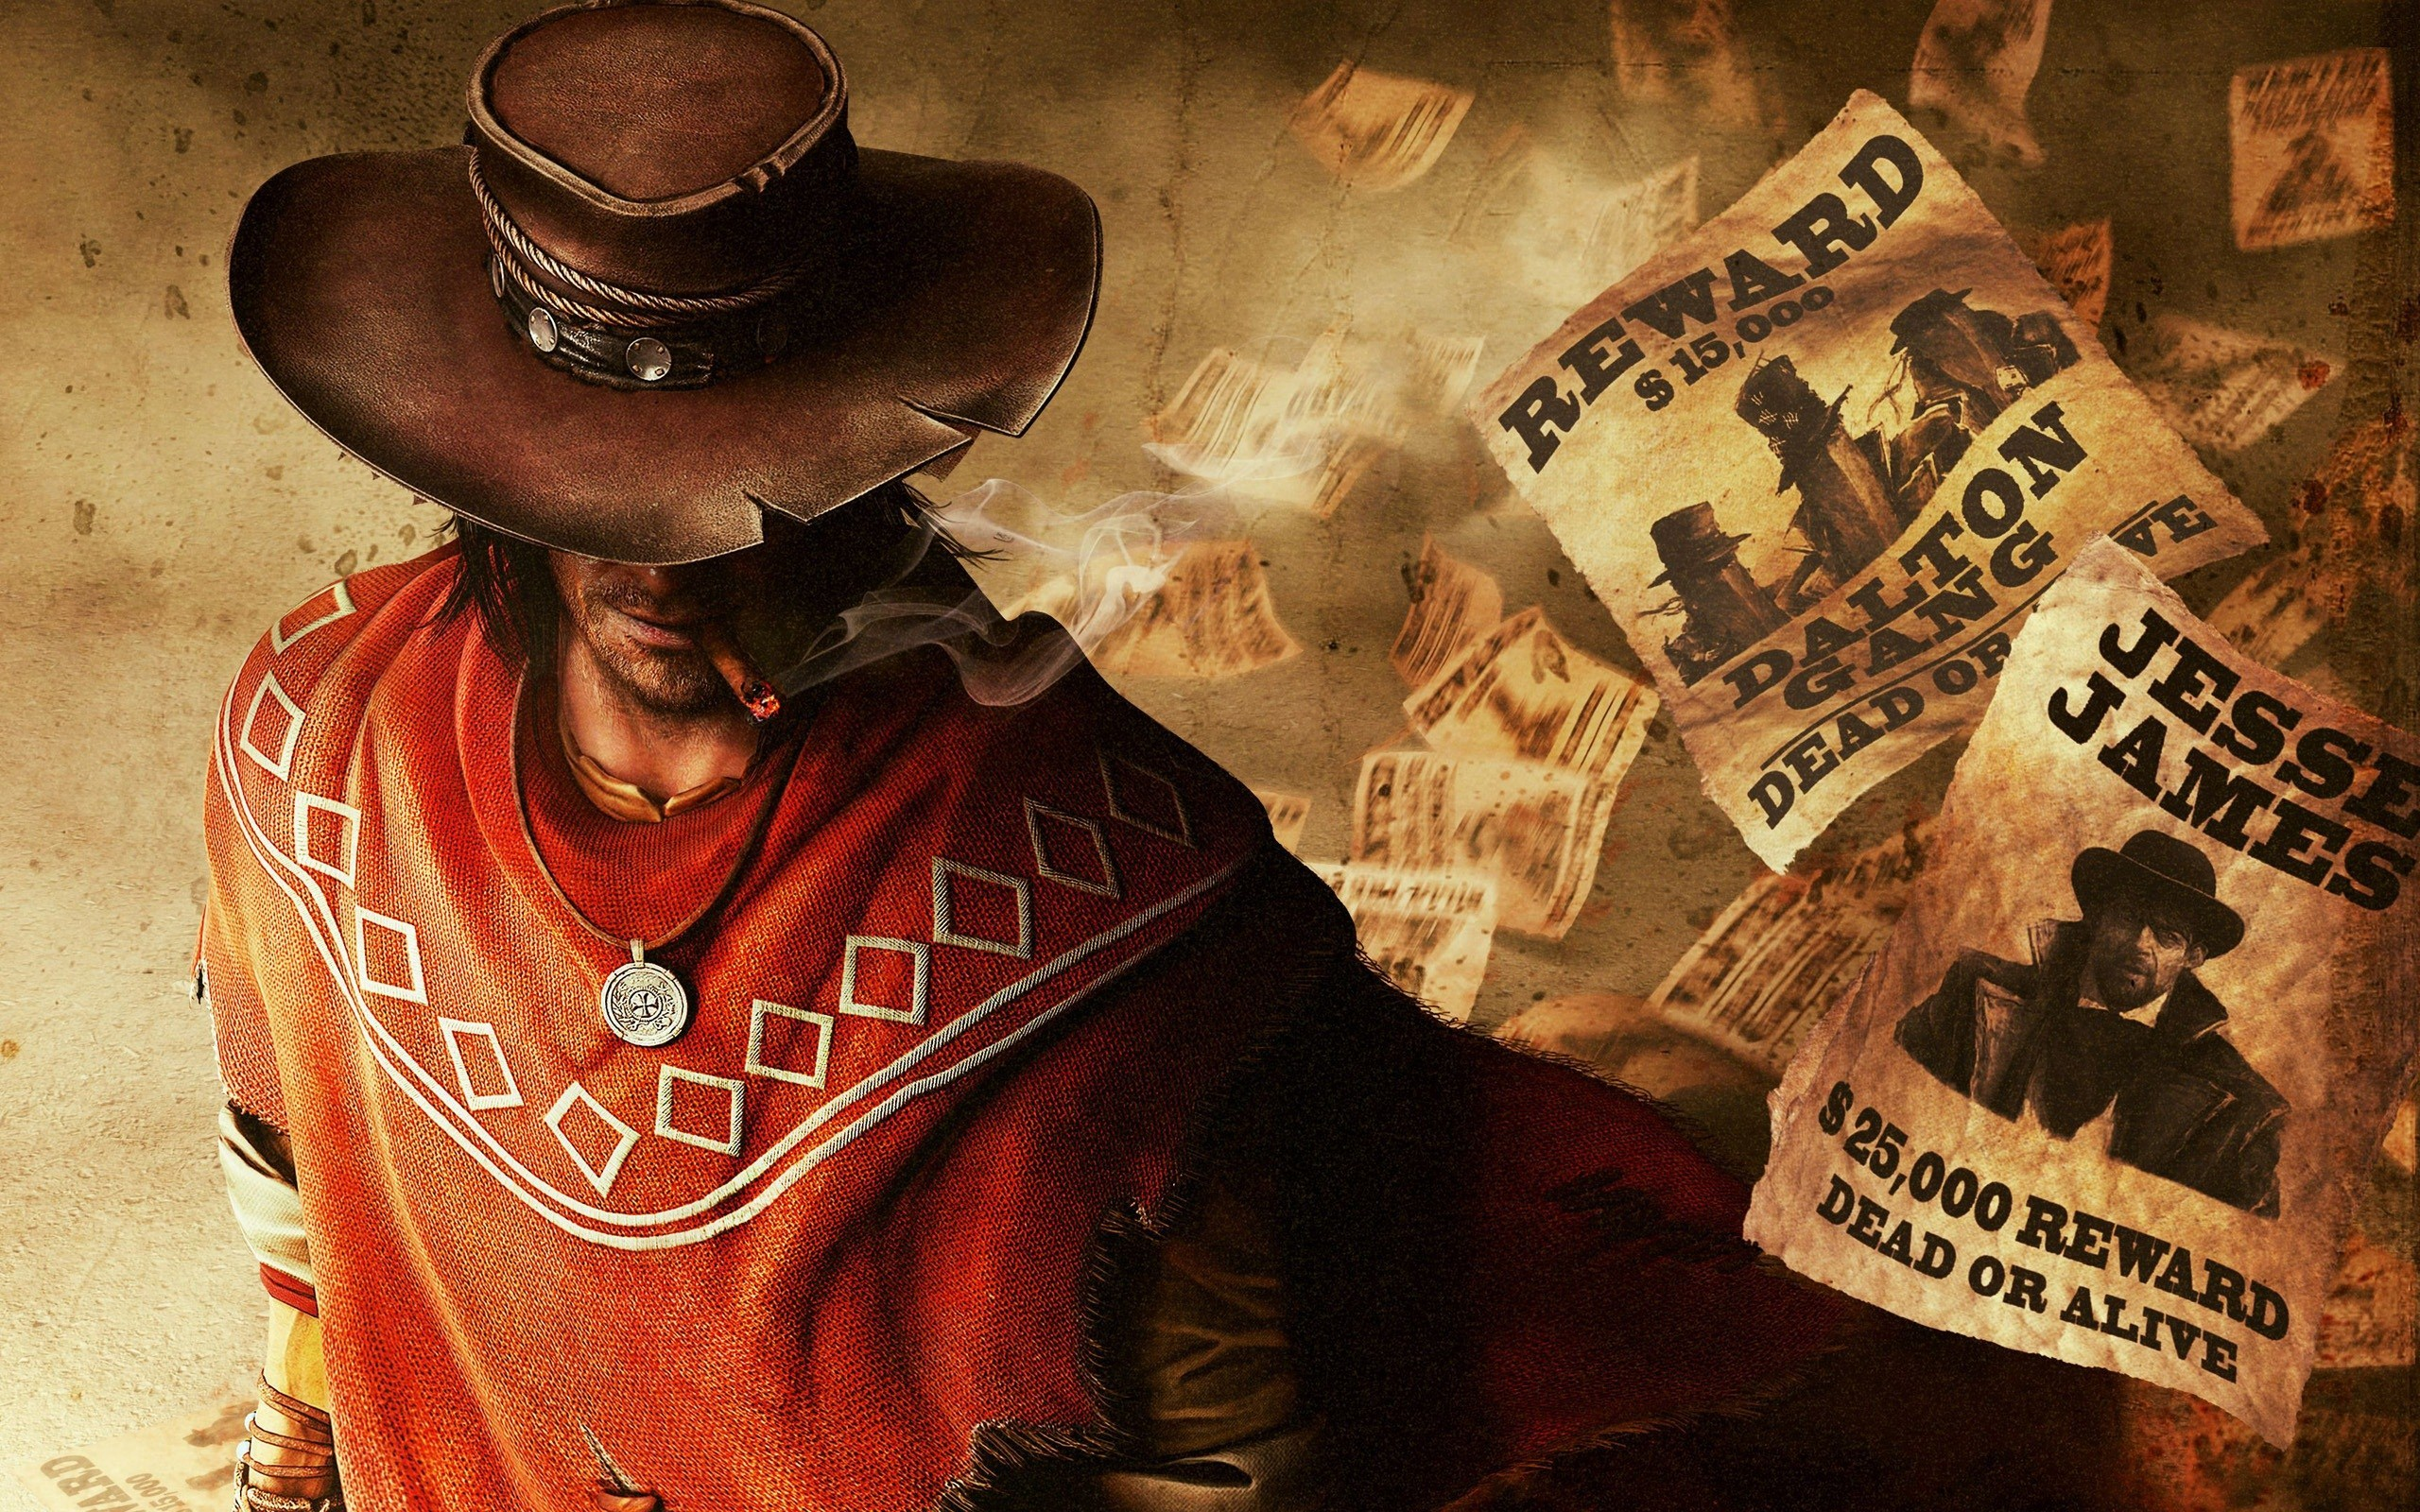 Call of Juarez Gunslinger Cowboy Hat Reward Wanted Game HD Wallpaper